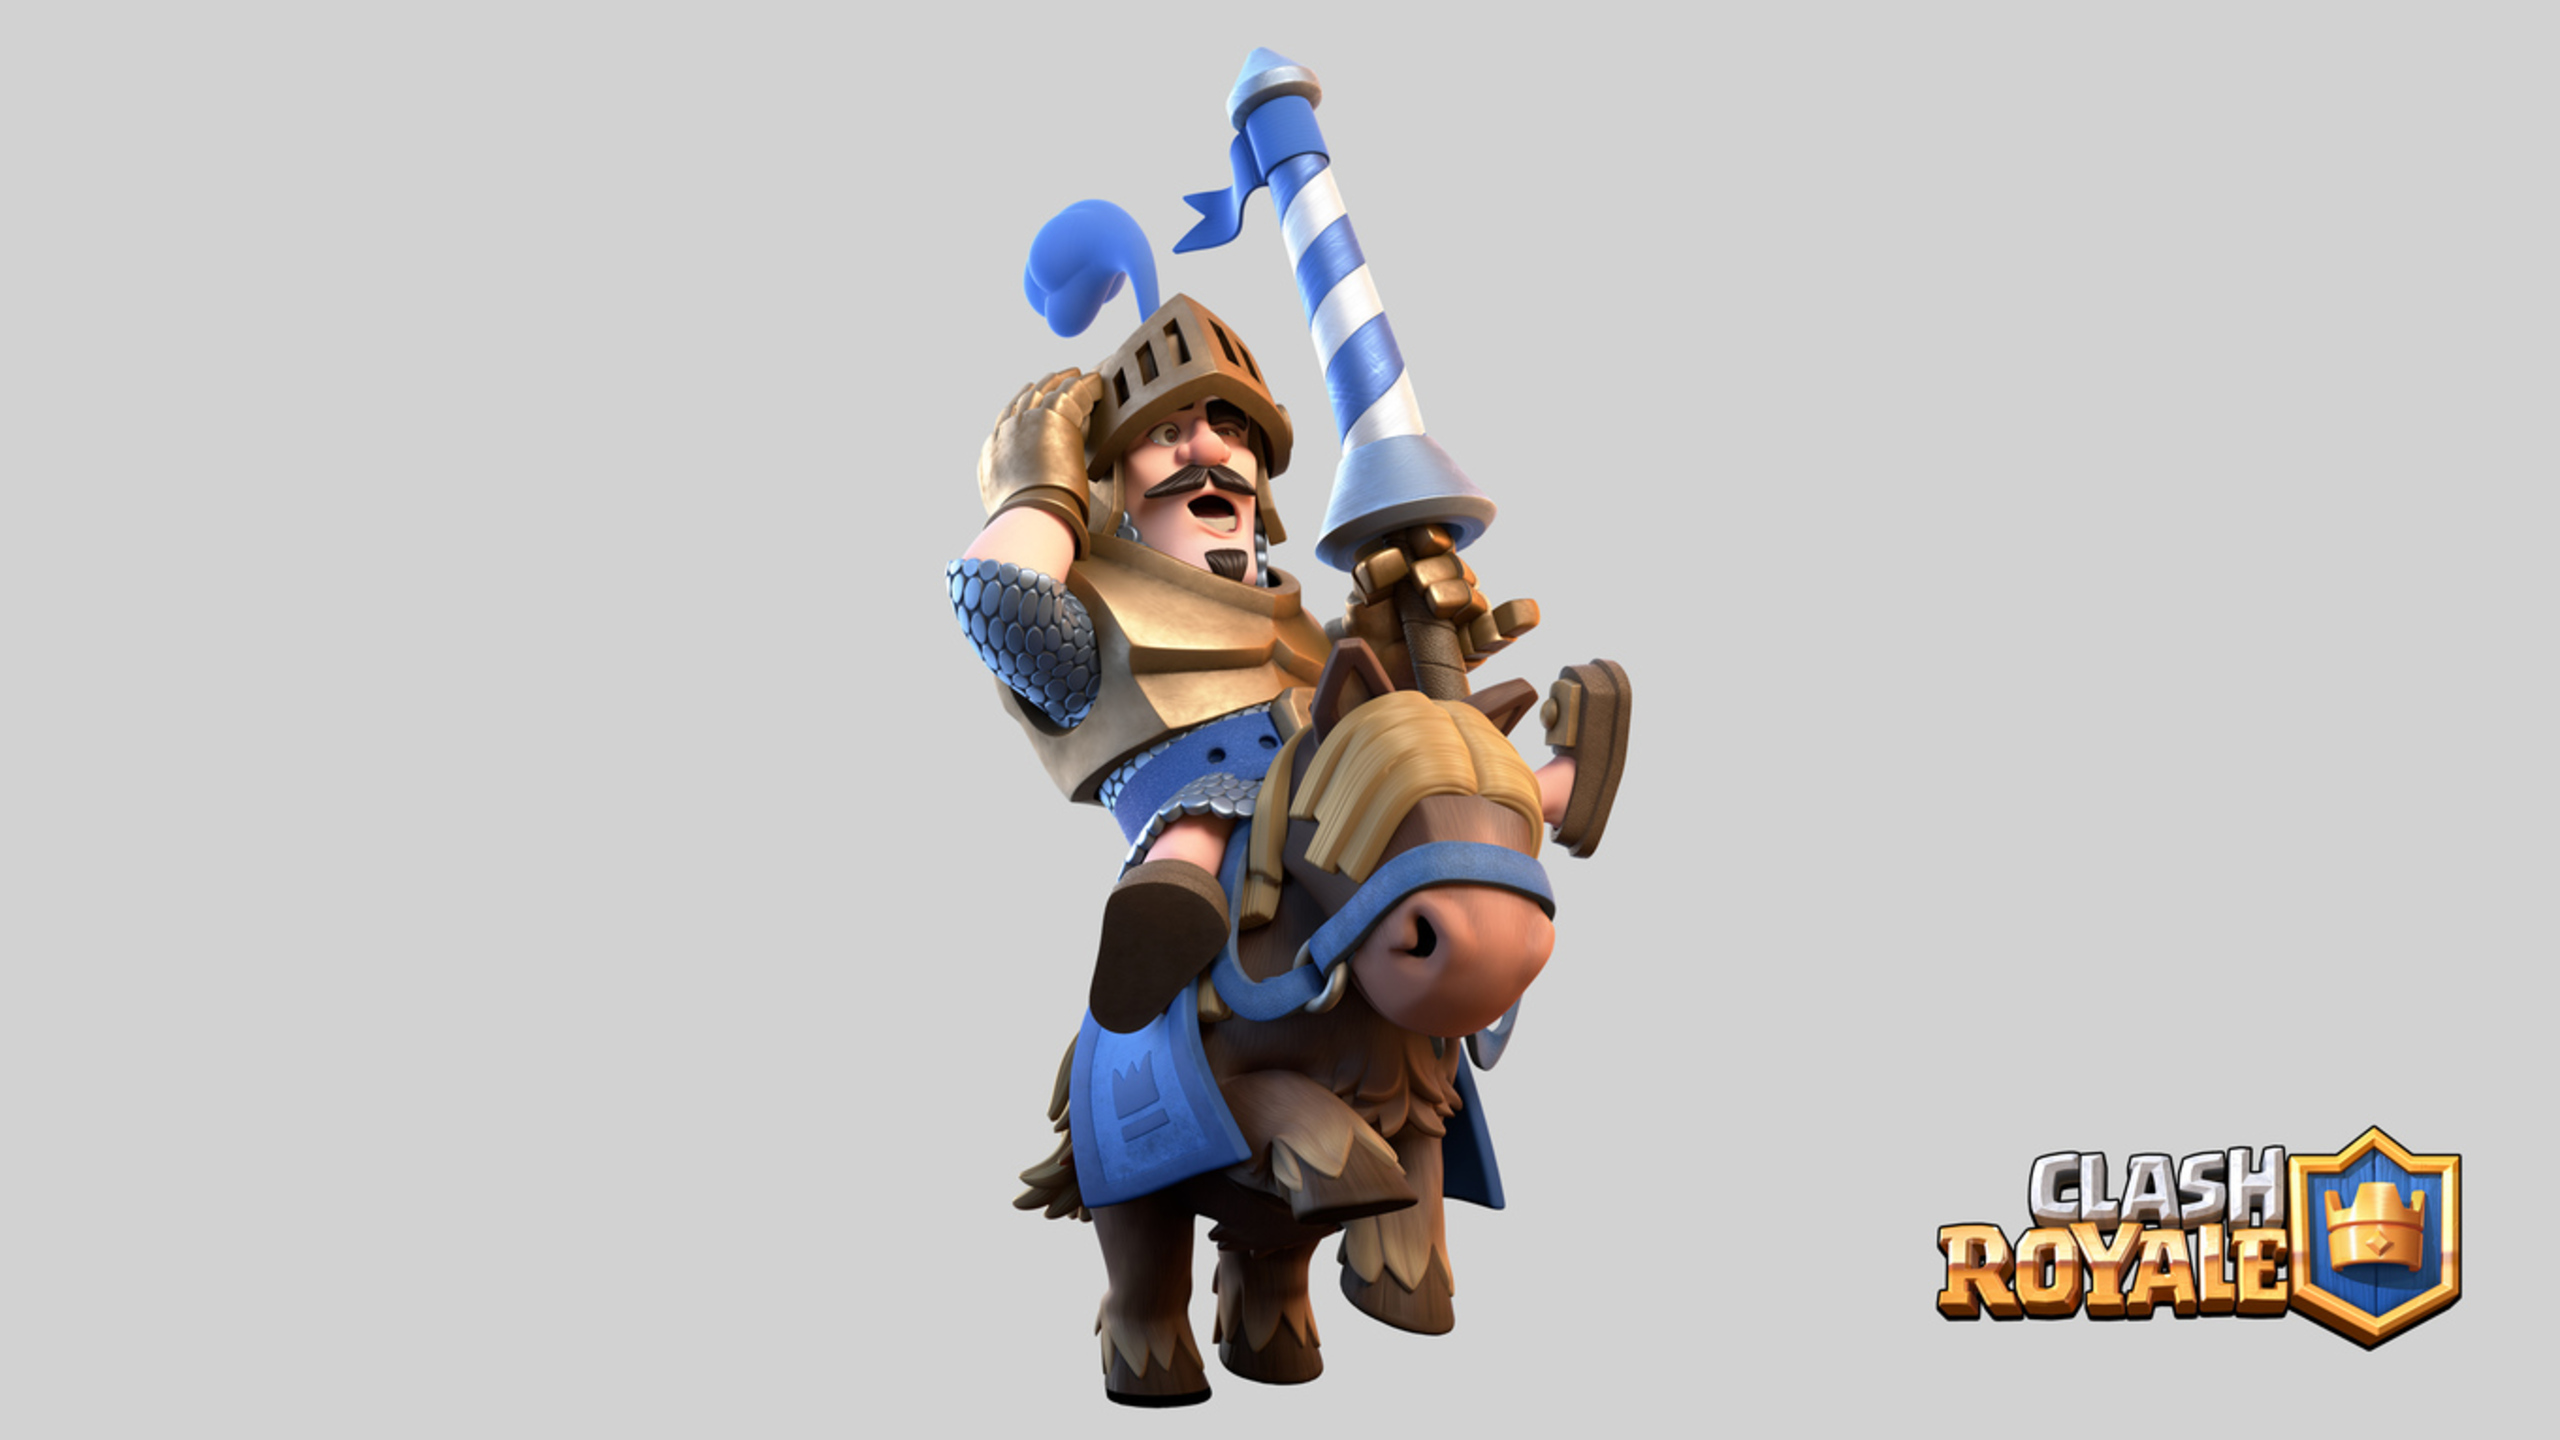 2560x1440 clash royale blue prince 1440p resolution hd 4k wallpapers images backgrounds - Clash royale 2560x1440 ...